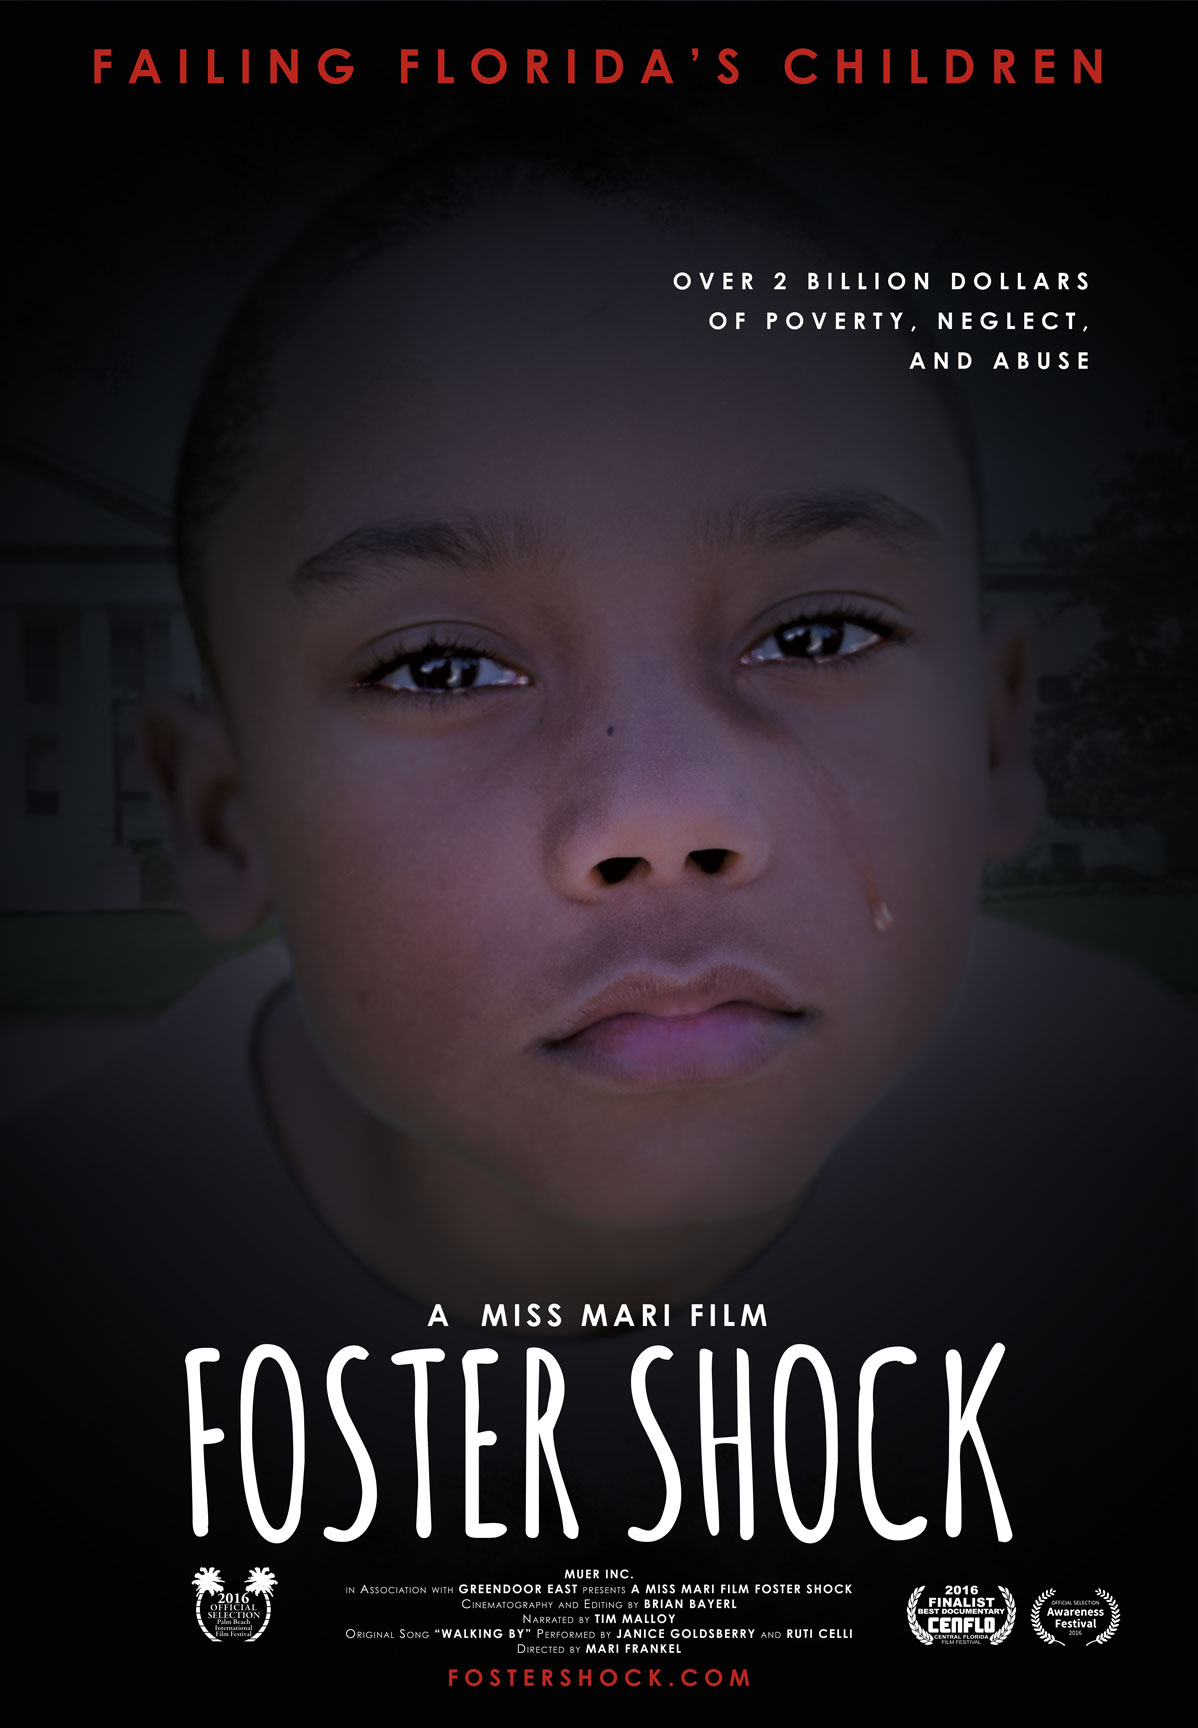 Foster Shock Poster Image